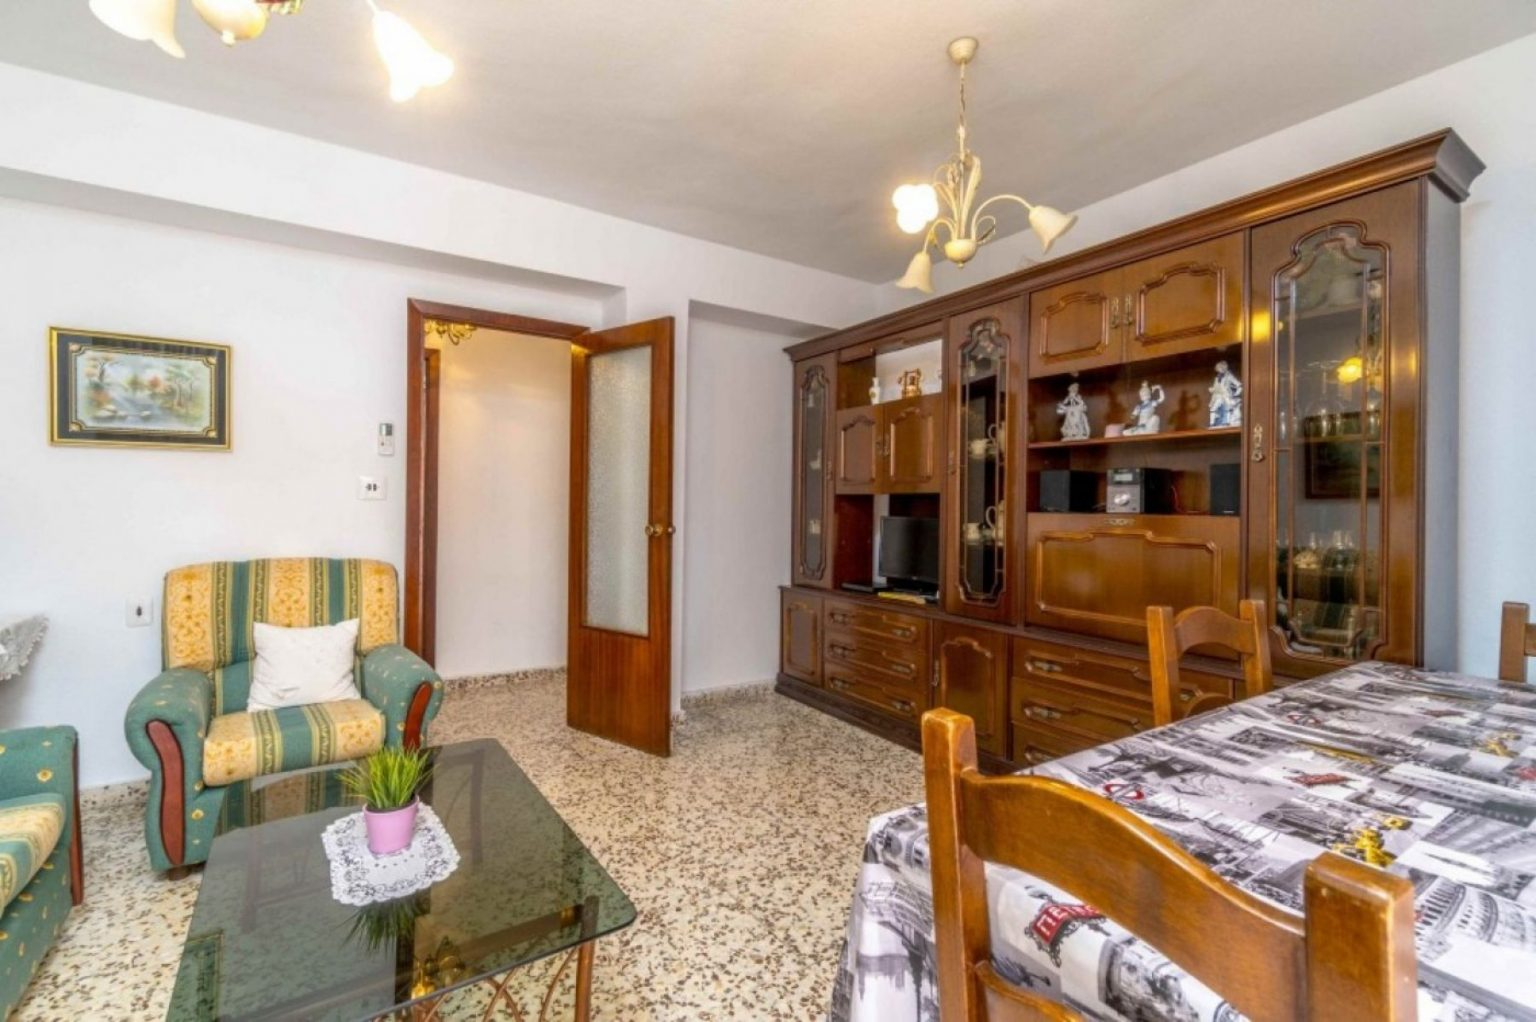 3 bedroom apartment For Sale 200m From the Accequion Beach, in Torrevieja